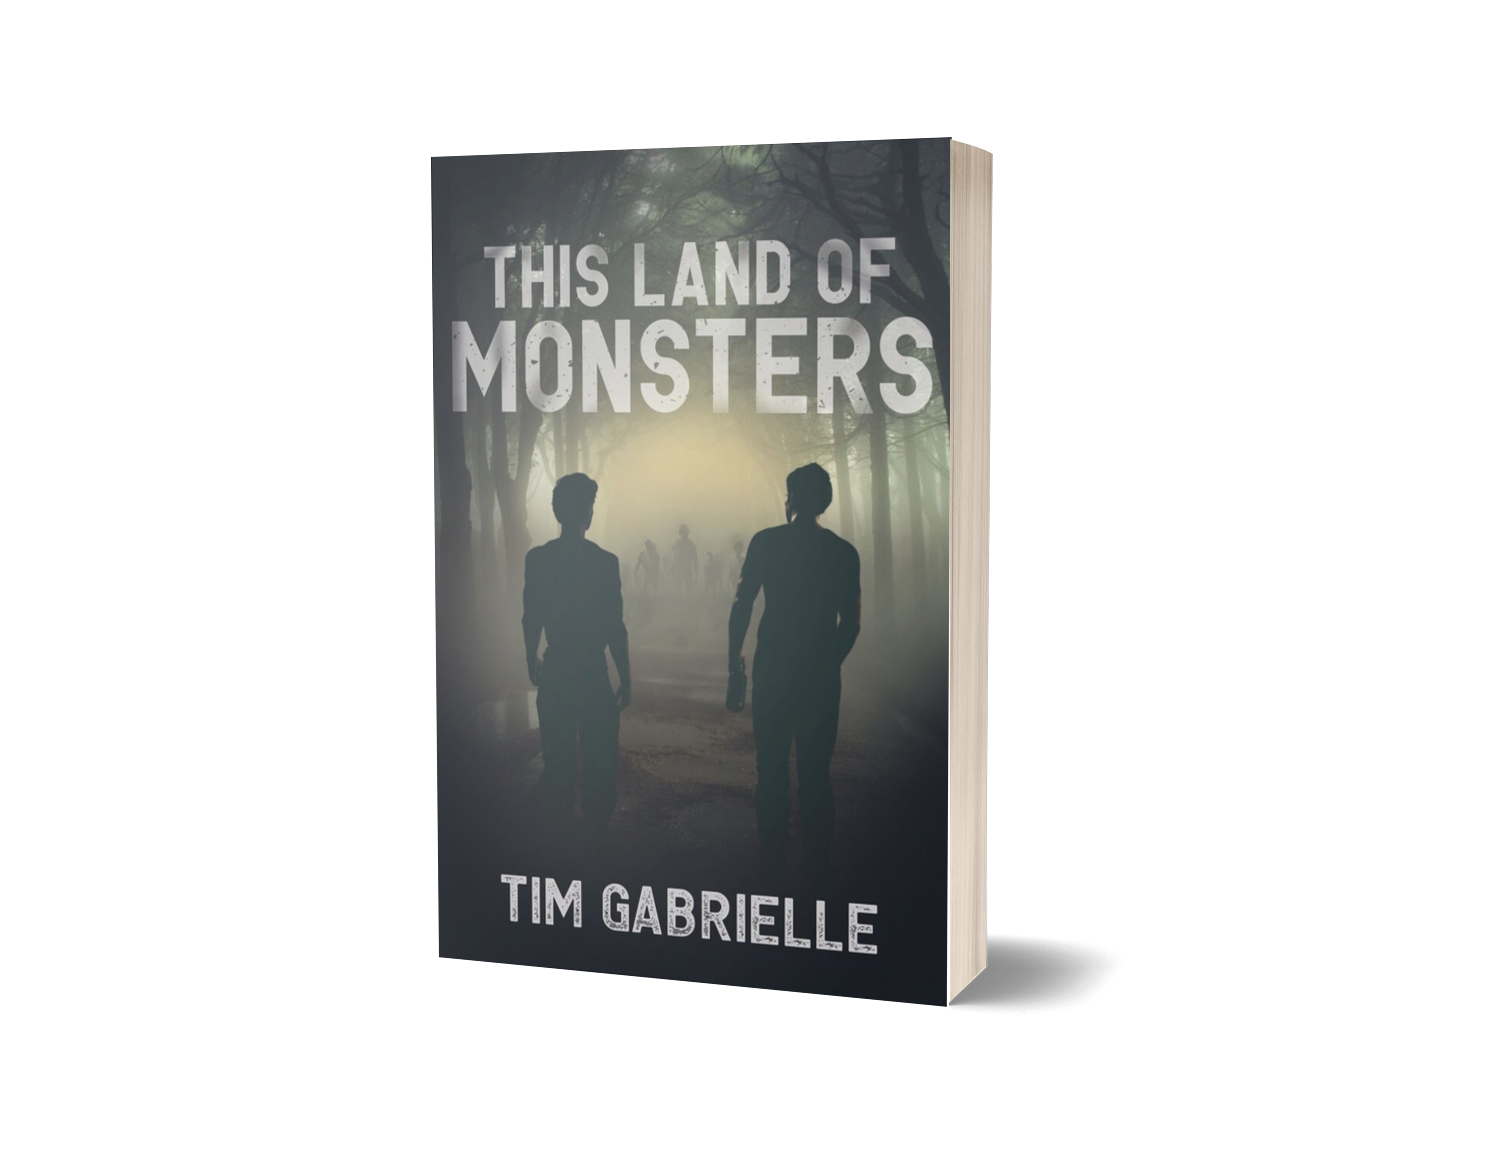 THIS LAND OF MONSTERS (click HERE for purchase)       It's bad enough his mother is  DEAD .  Even worse — he's been left alone with his abusive, alcoholic stepfather, Duncan.  When an apocalyptic outbreak of a highly infectious disease wipes out most of humanity, seventeen-year-old Nash must avoid being killed by the victims of the outbreak, blood-thirsty monsters called Howlers.  After a routine scouting mission, Nash and Duncan stumble upon a hidden sanctuary in the woods where Nash finds the acceptance and love he's been searching for since the world ended. But when a mysterious cult leader overruns his new home, Nash and his newfound family must bend to his will or organize a rebellion.  With enemies both inside and outside the fence, Nash and his family must fight for their freedom, and their lives.     CLICK HERE FOR THE TRAILER